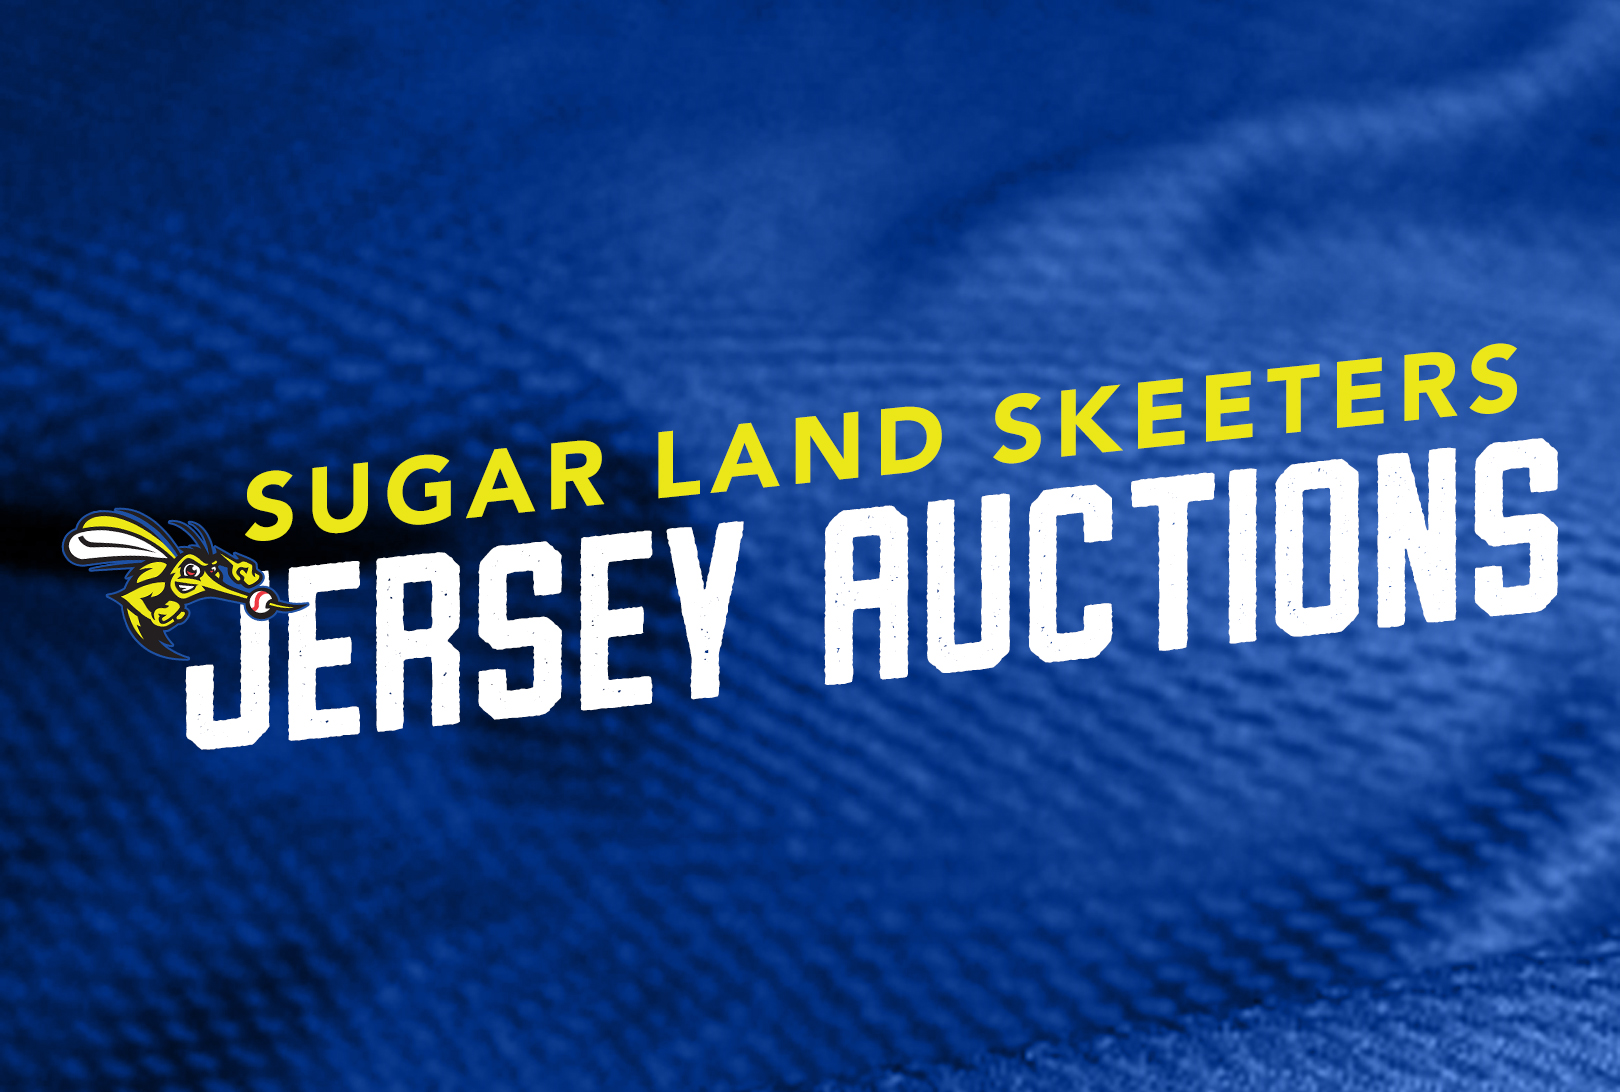 Skeeters Jersey Auctions